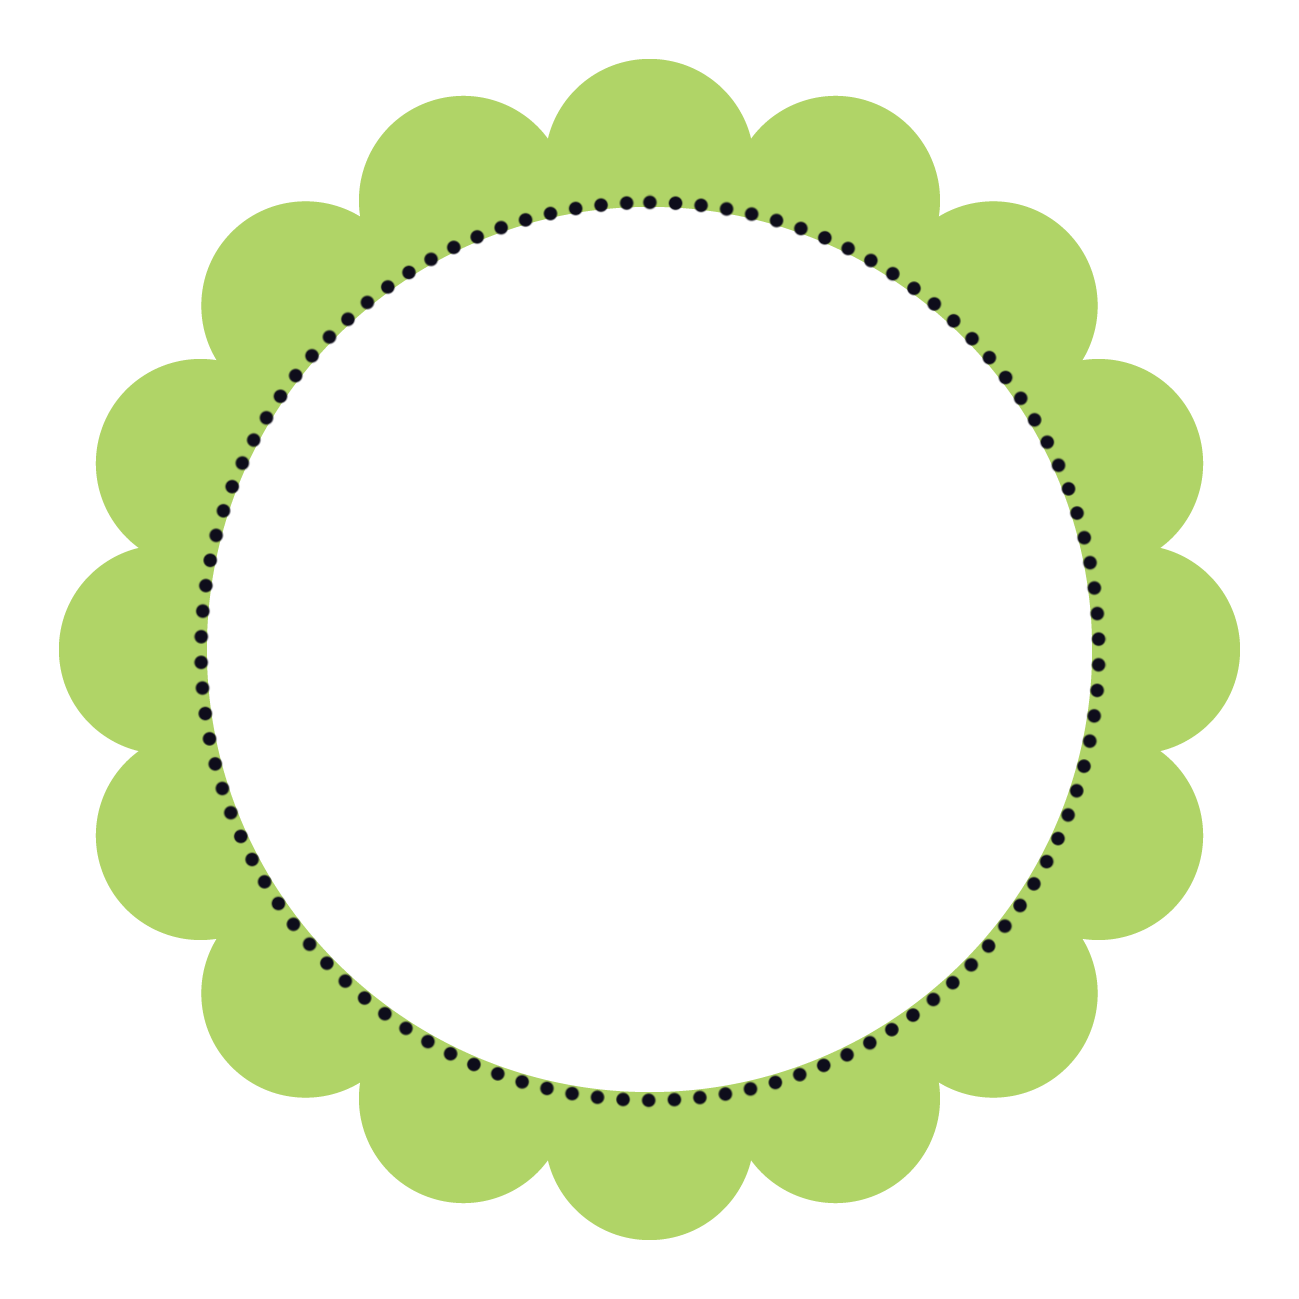 circle clipart cute